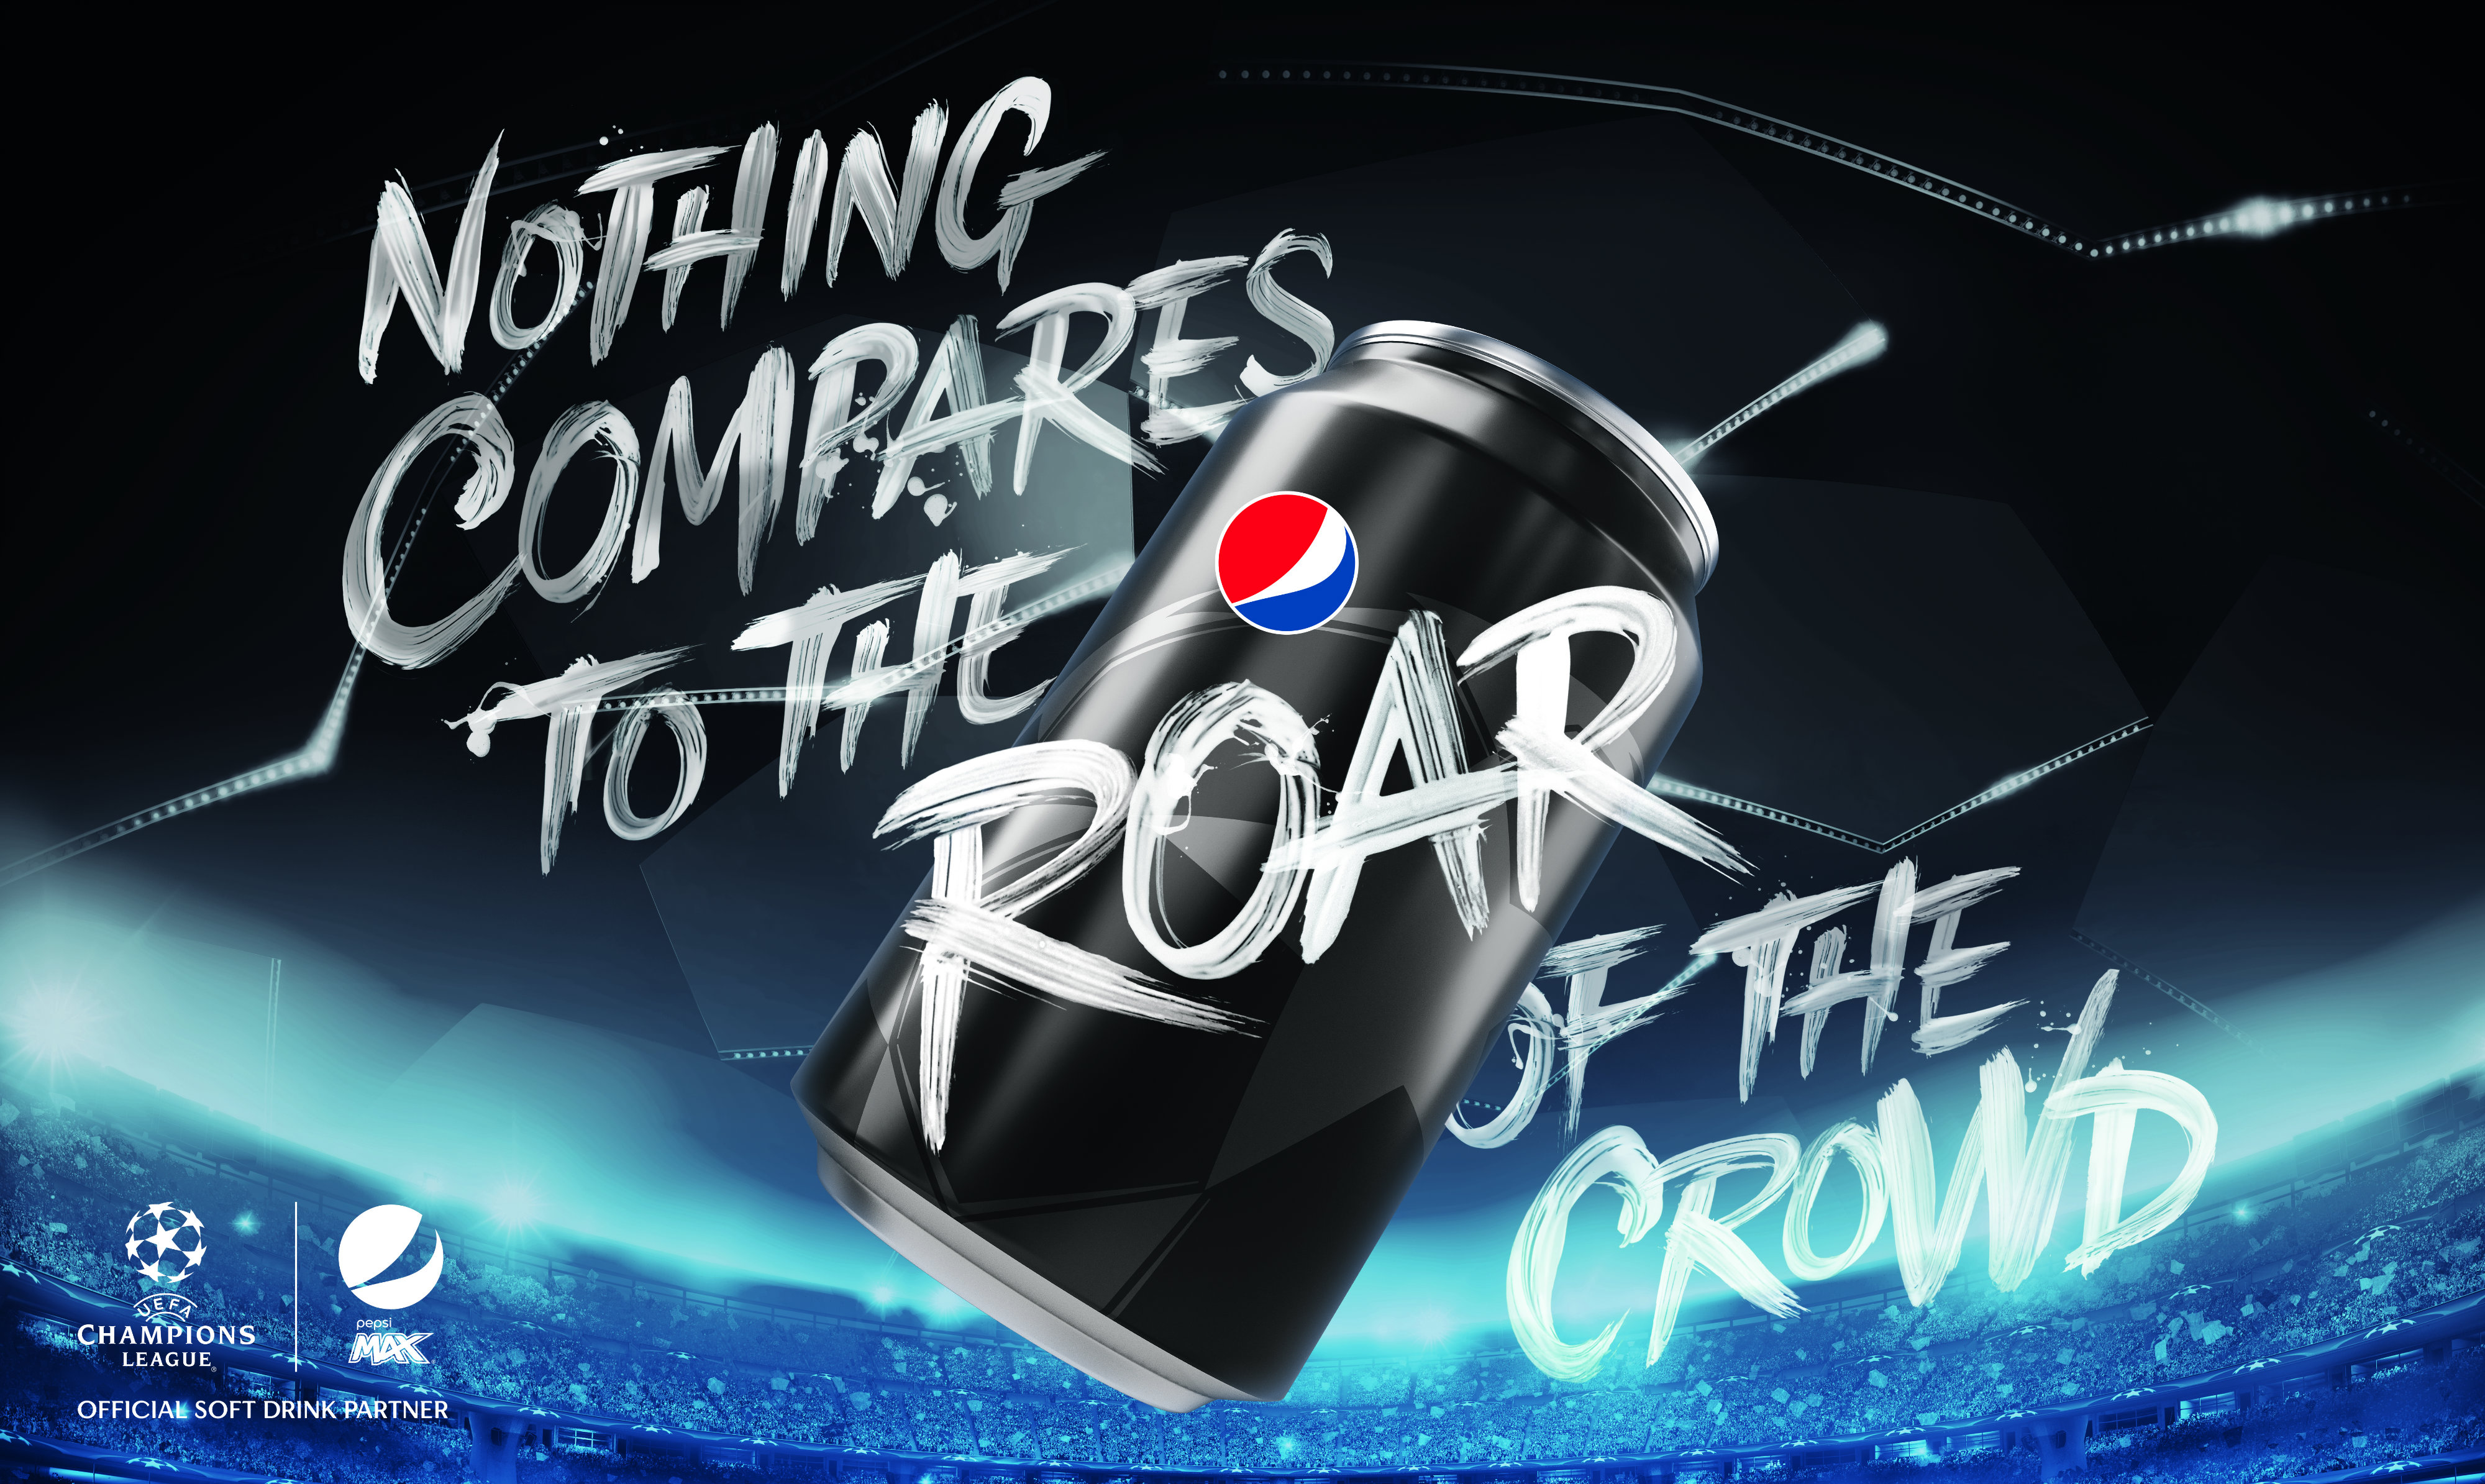 gay Pepsi company supporting